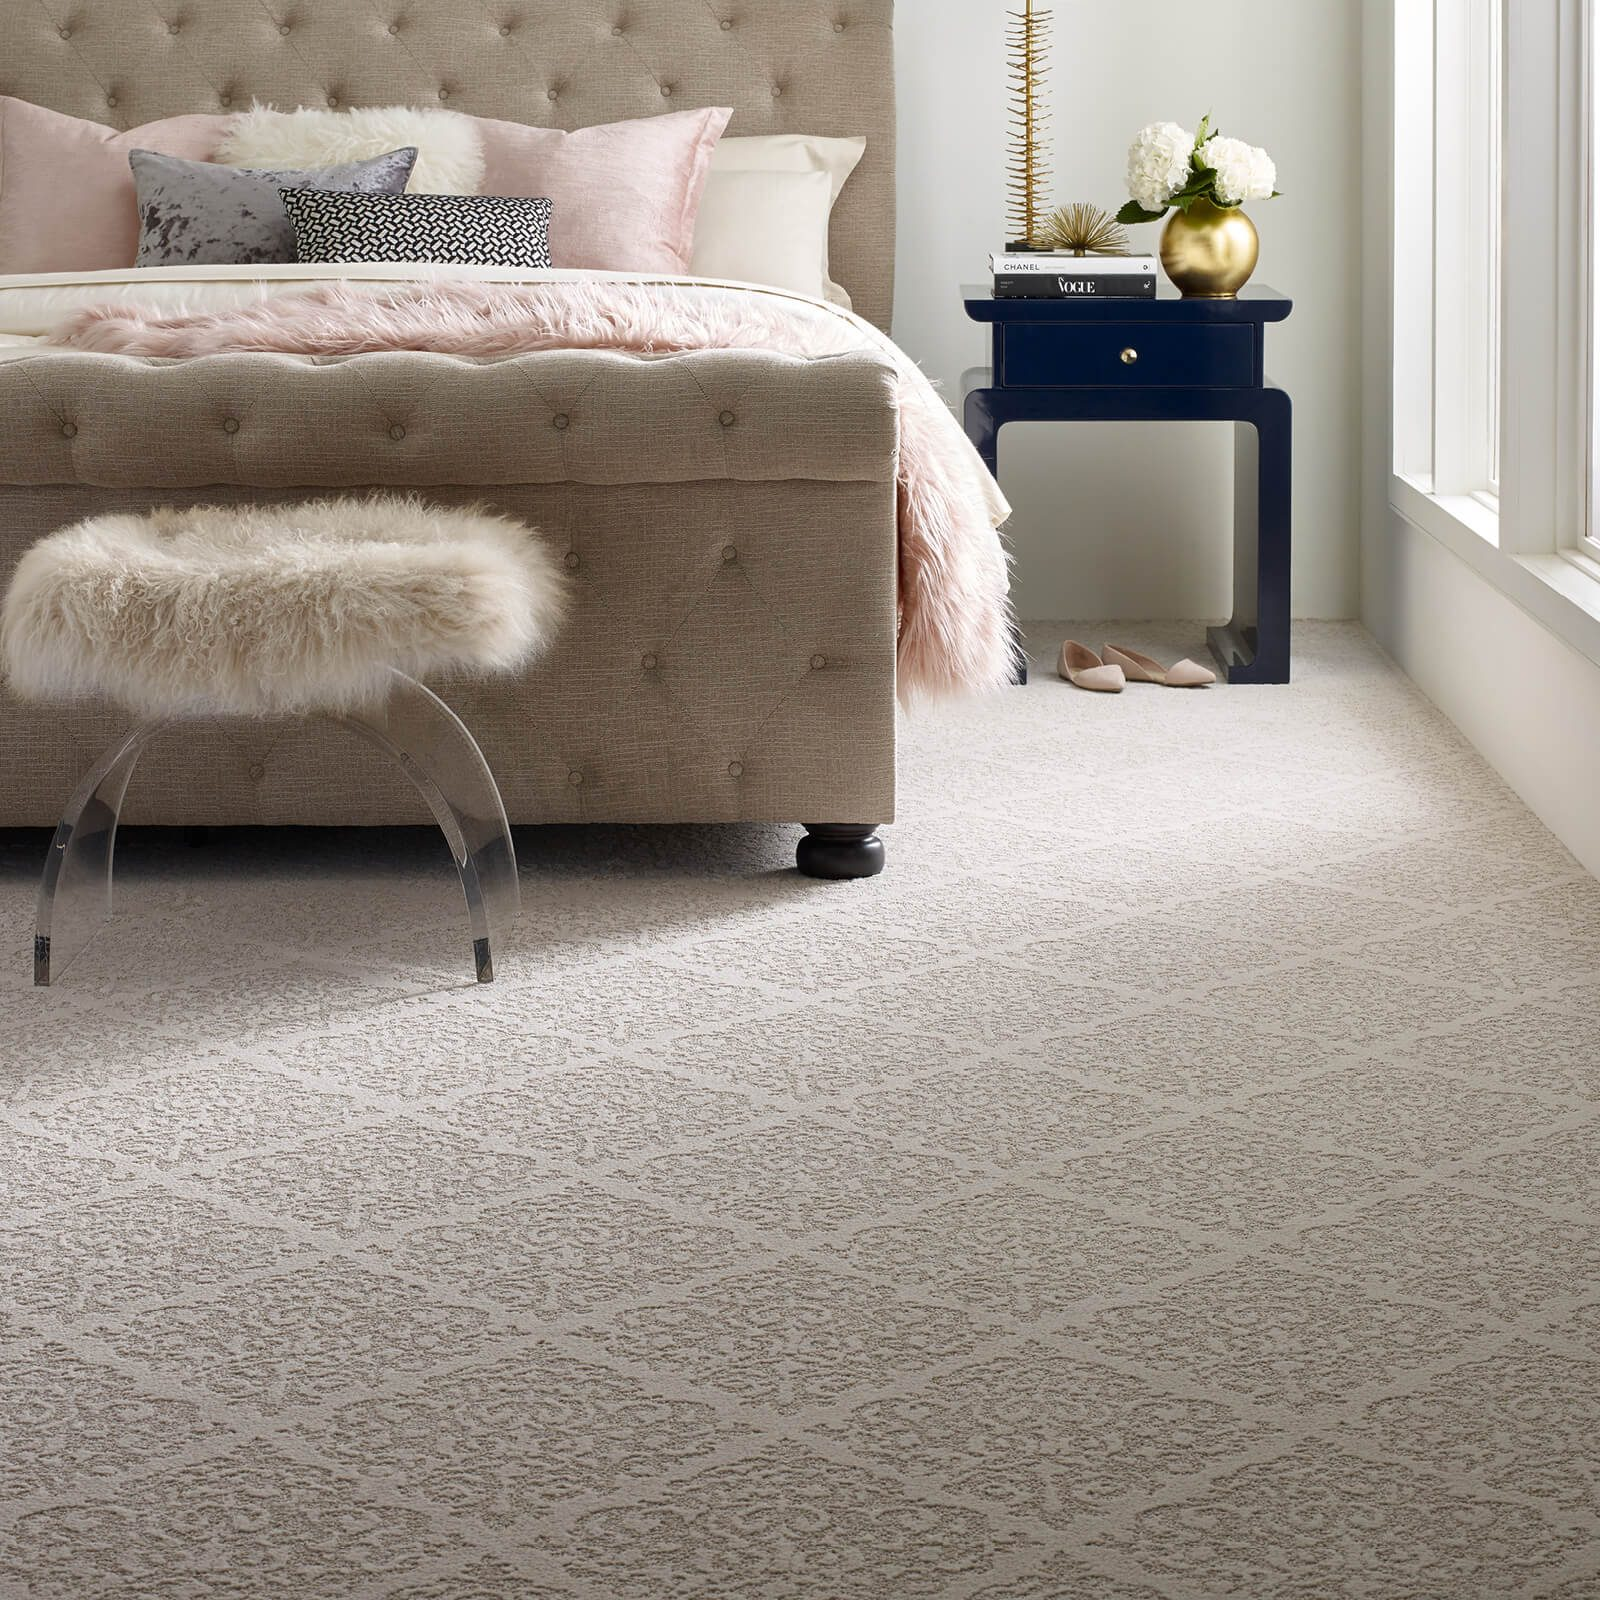 Chateau Fare | Broadway Carpets, Inc